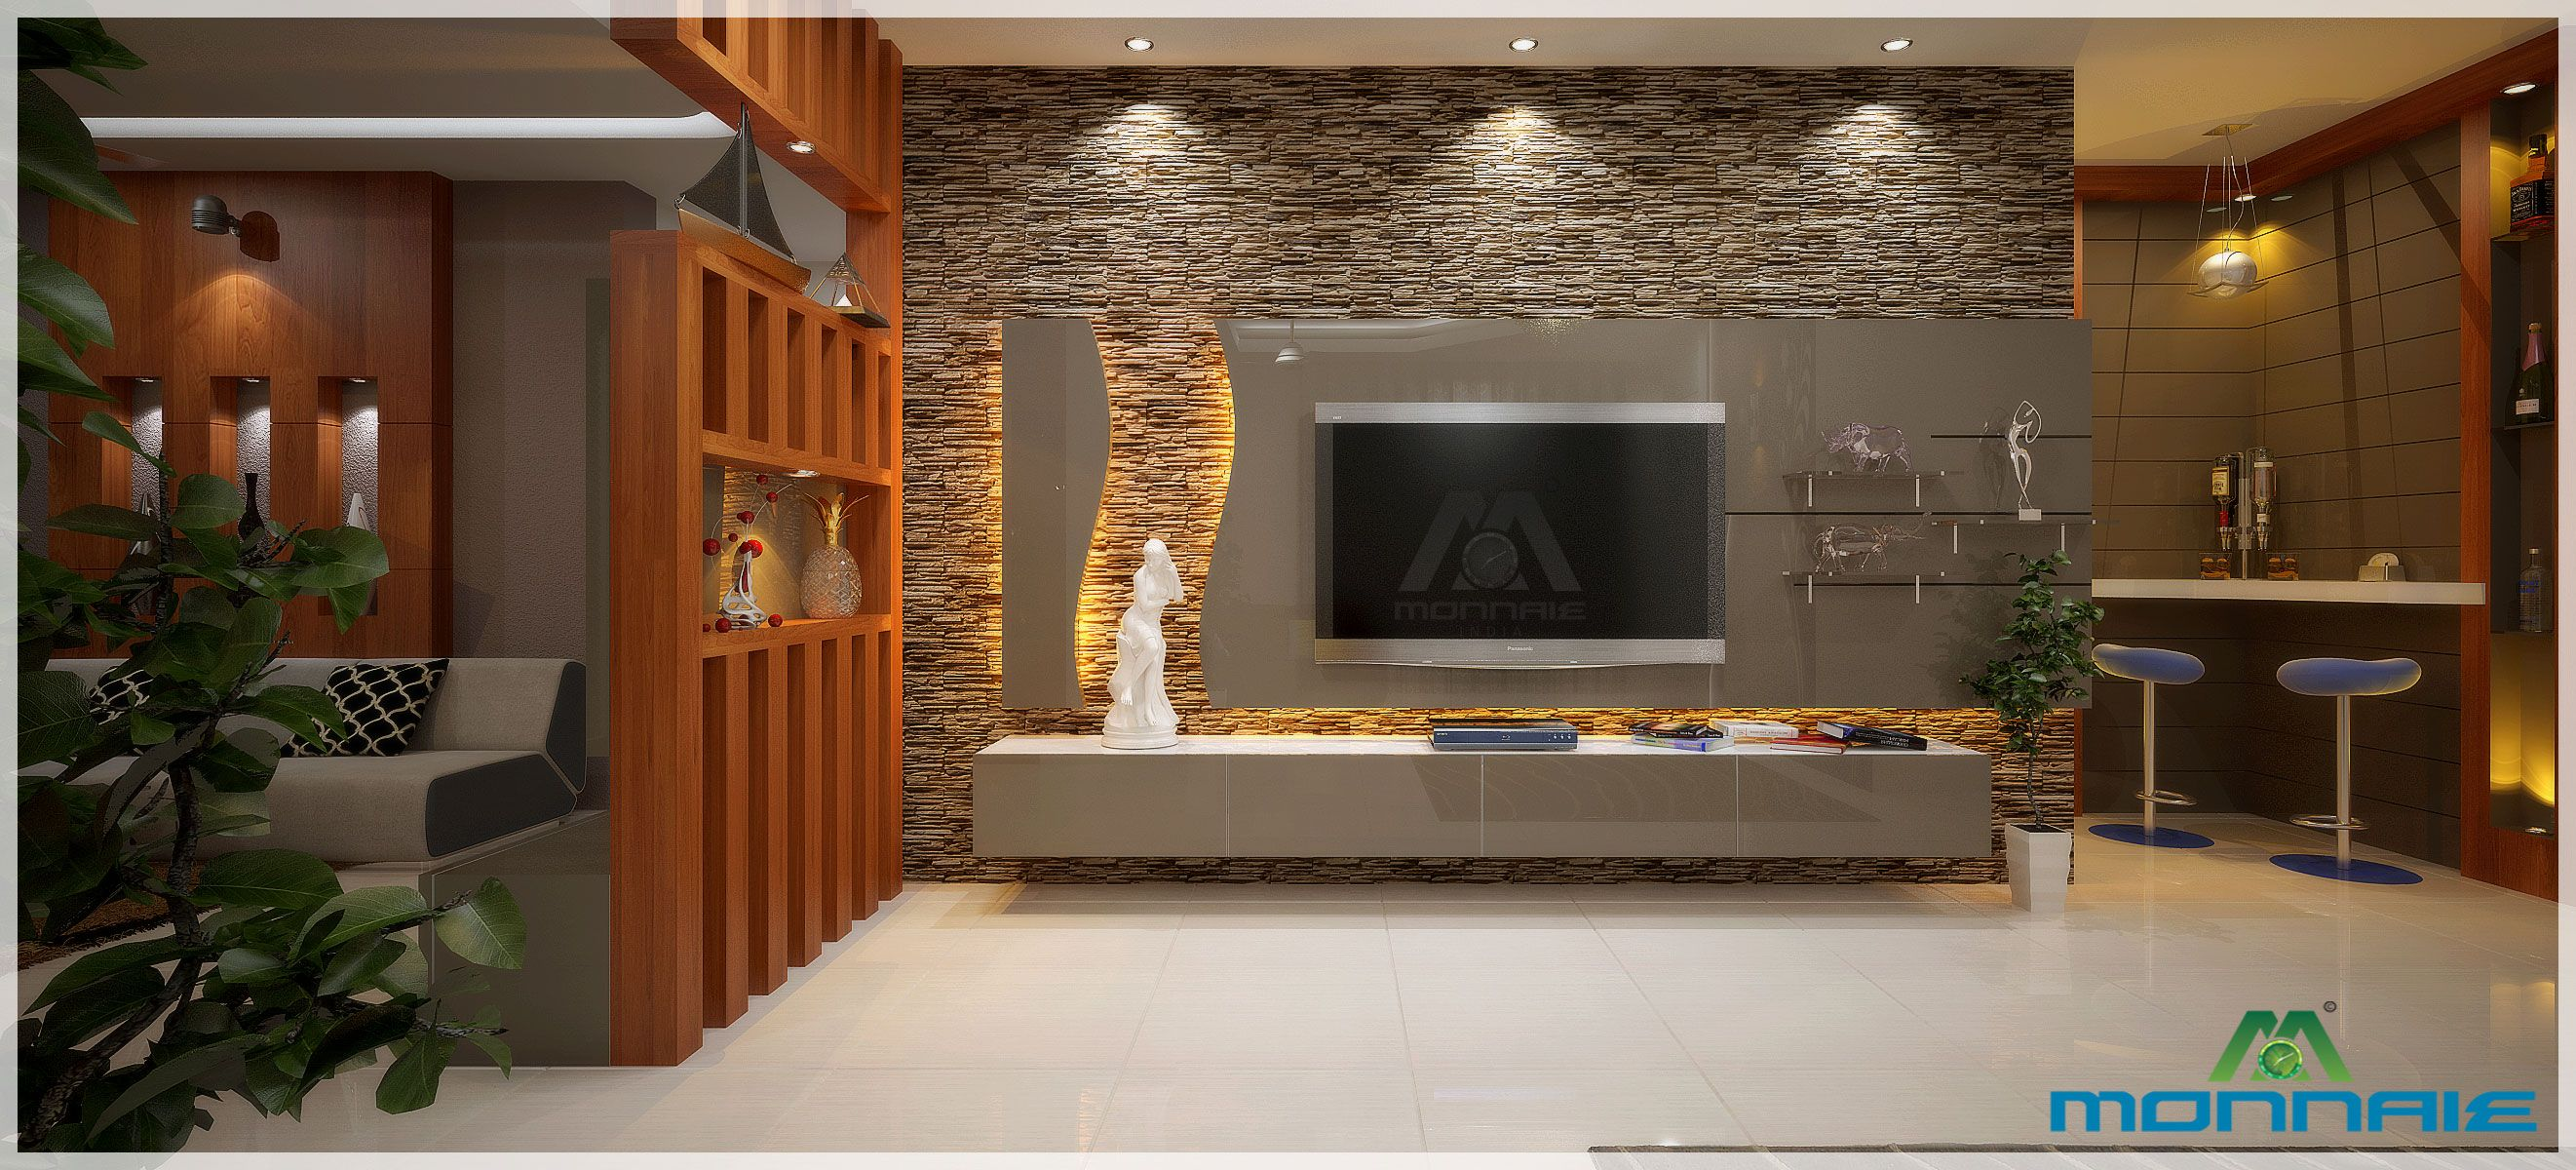 Simple LCD Unit With Modern Bar Counter Stone Cladding Wall For More: Http:/